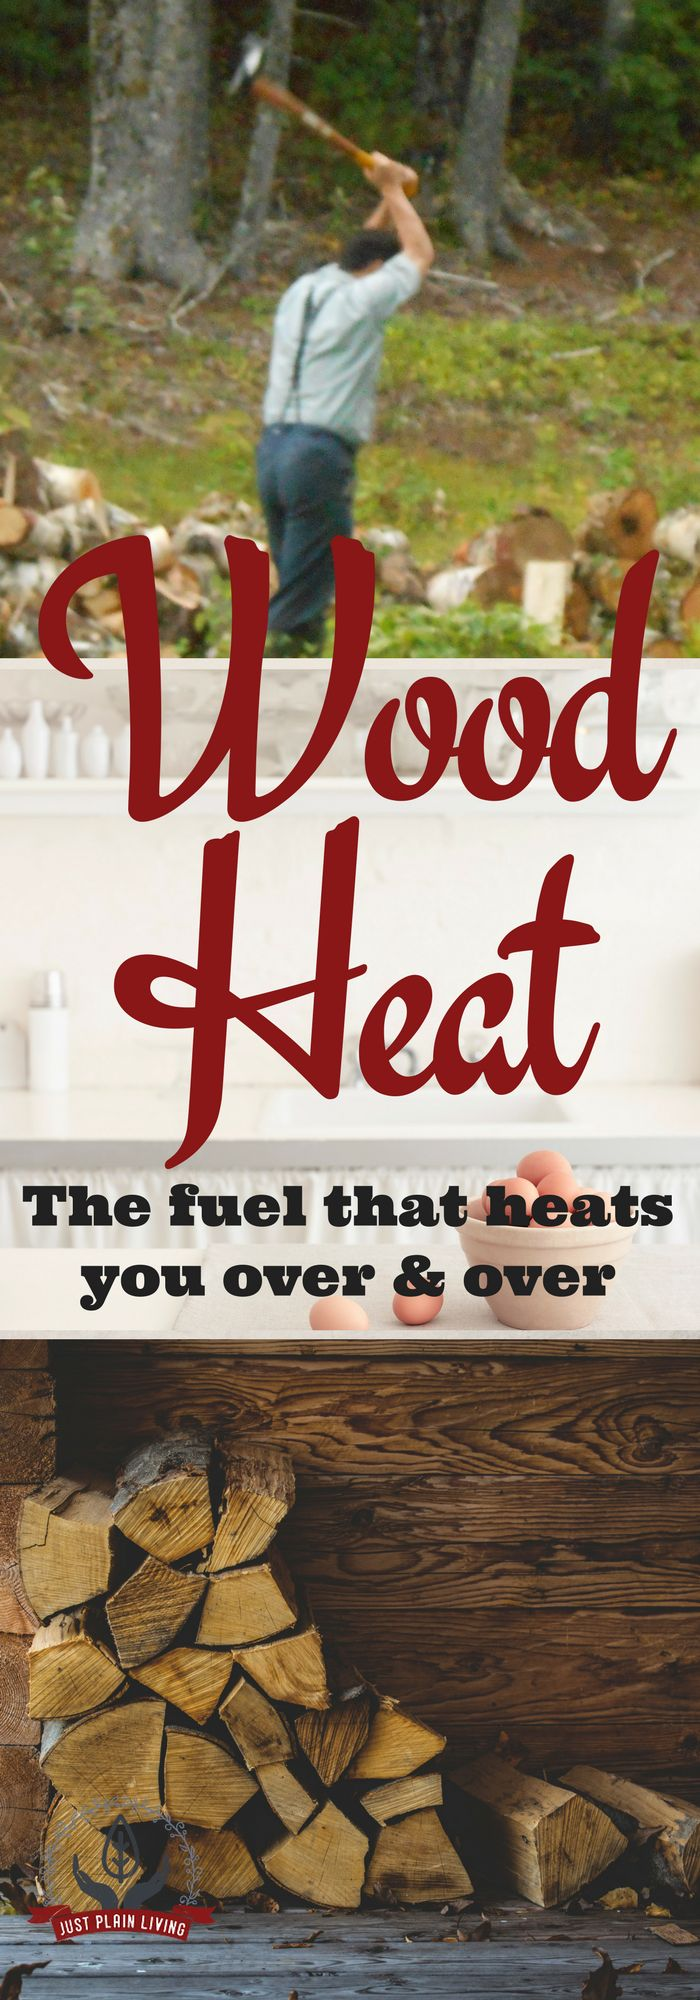 Living With Wood Fuel via @justplainmarie